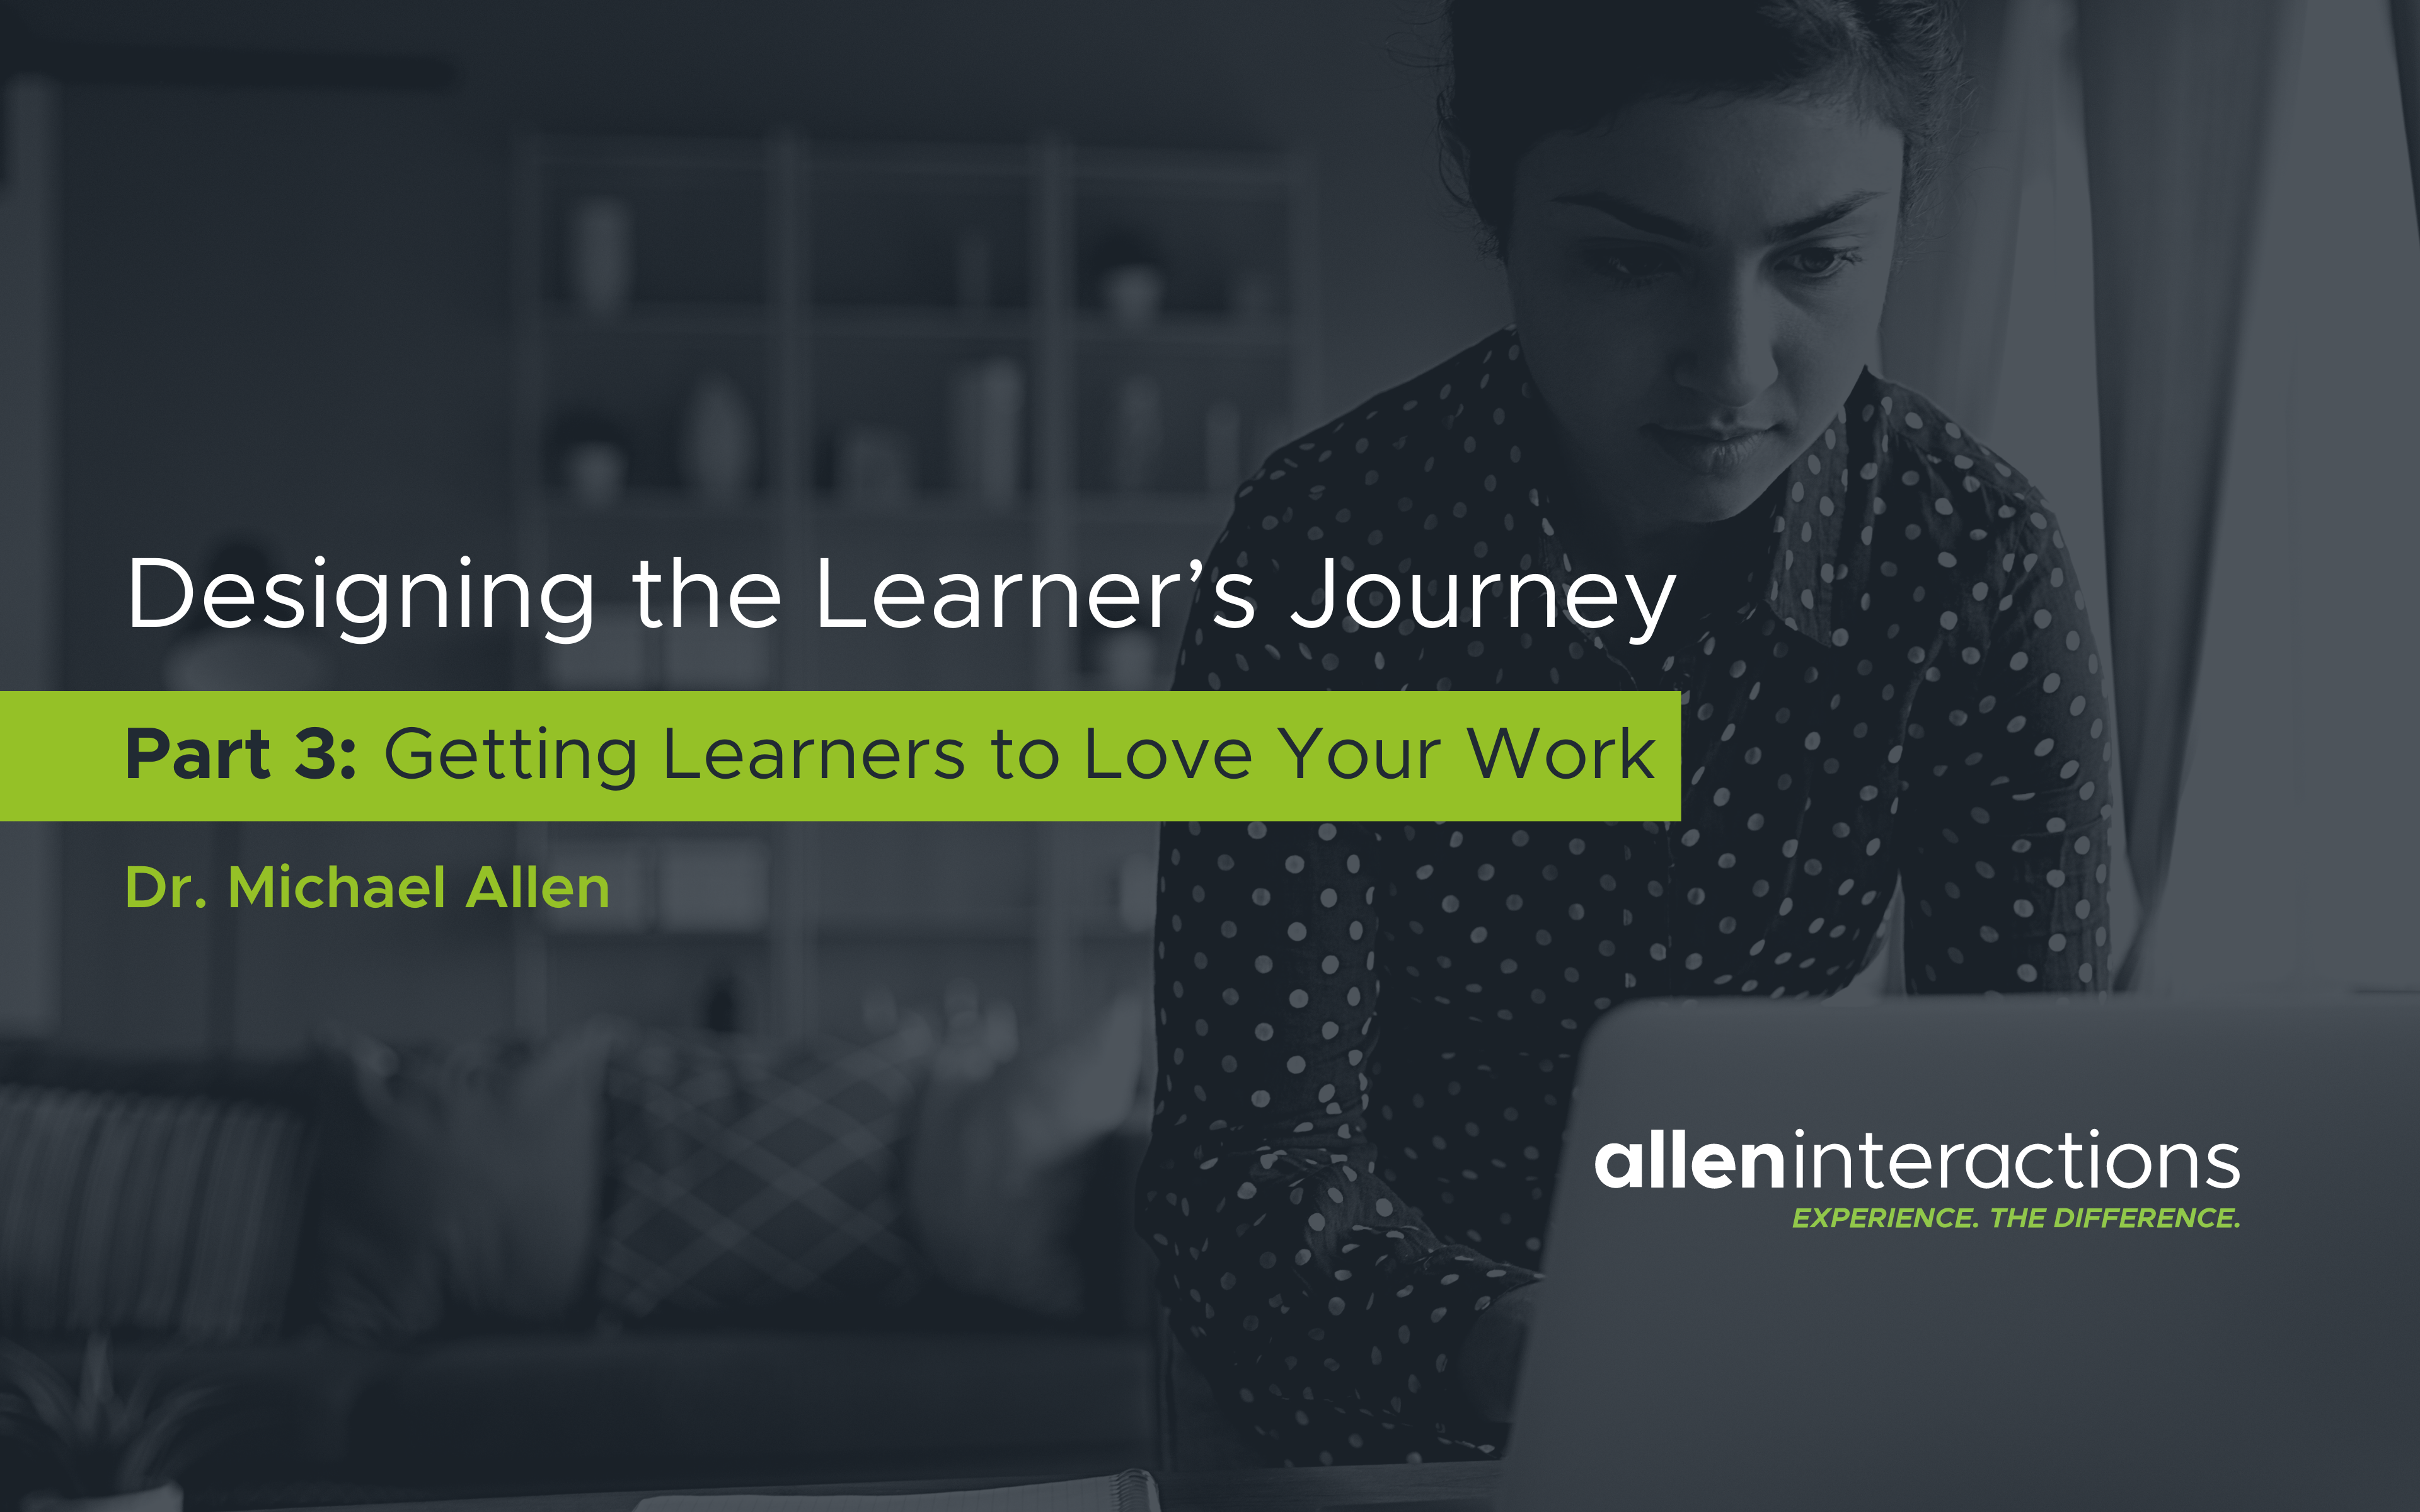 Instructional Design 3.0: Designing the Learner's Journey - Part 3: Getting Learners to Love Your Work